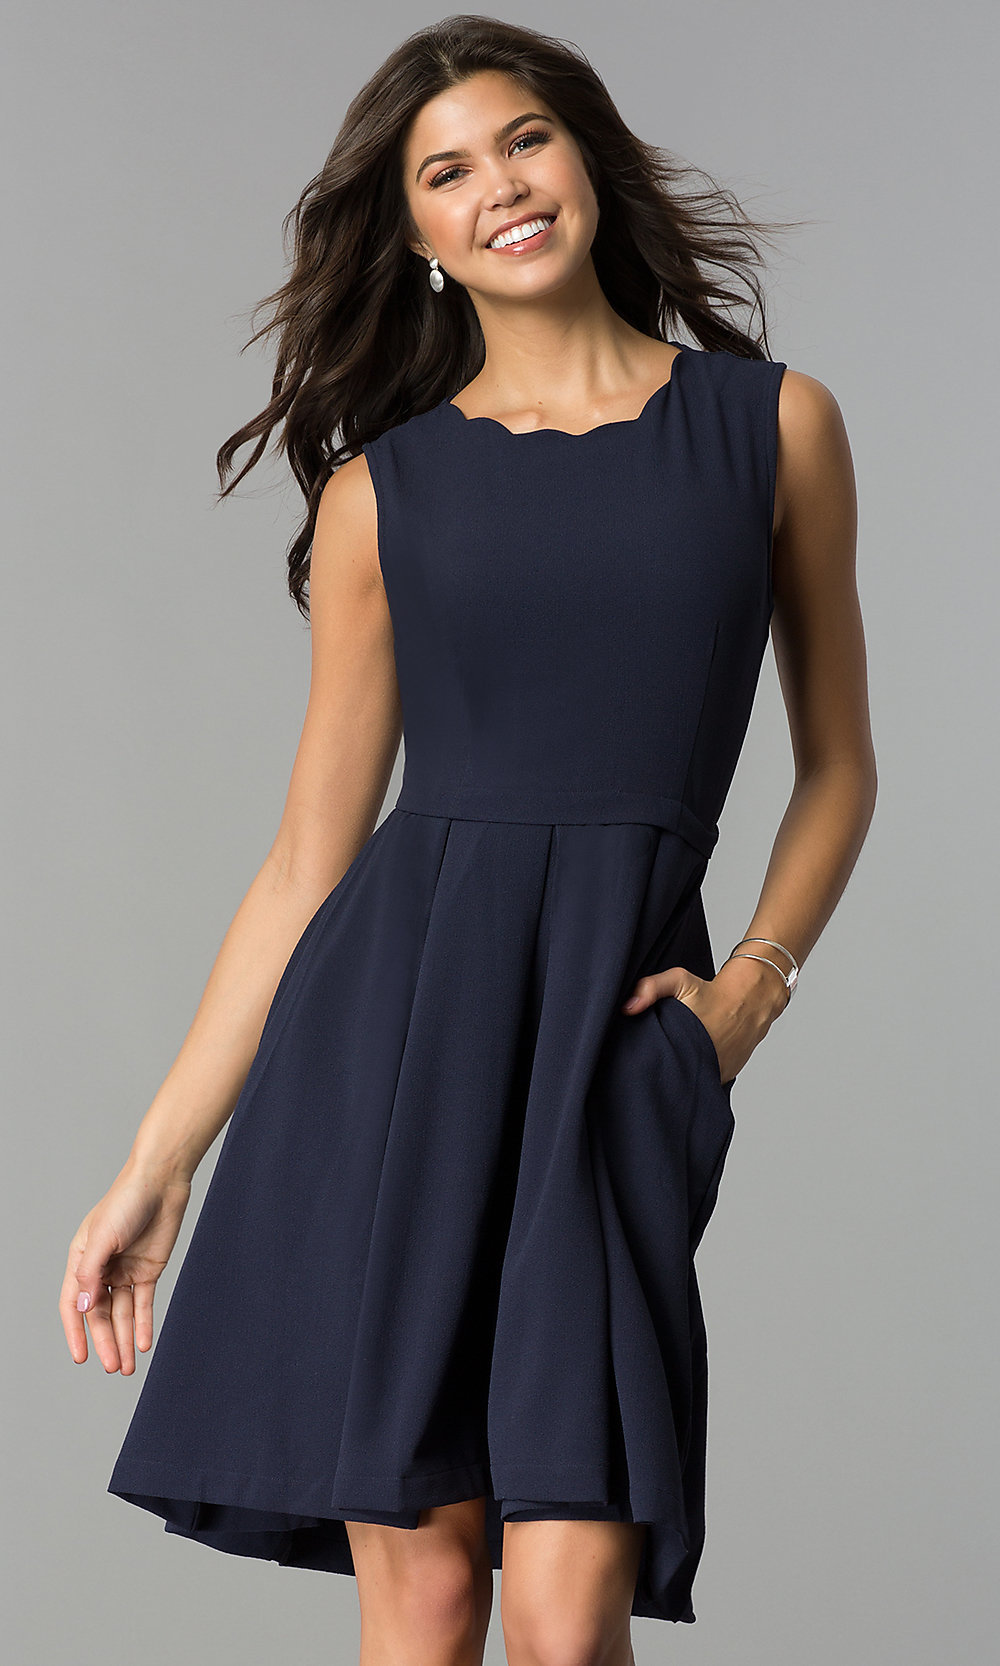 Pocketed Navy Blue Wedding Guest Party Dress Promgirl